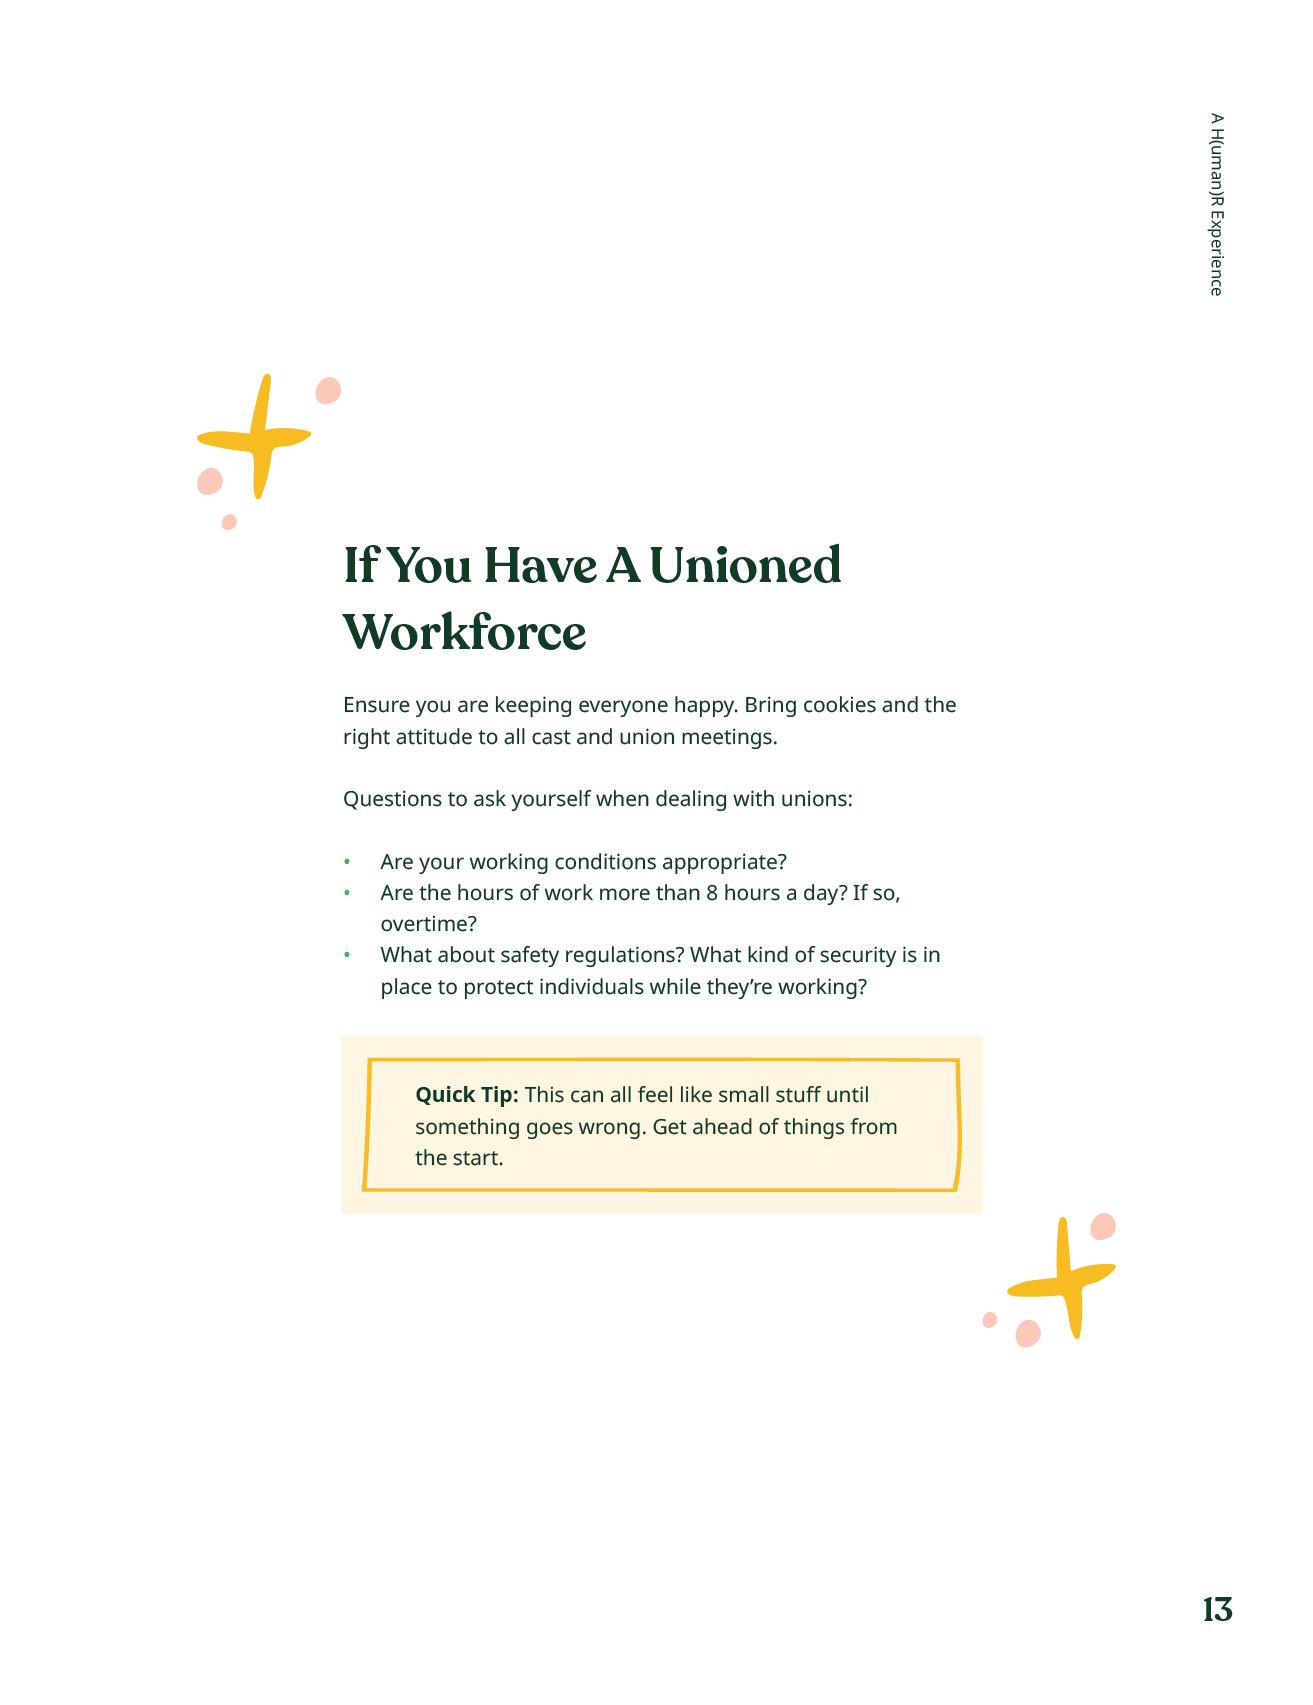 Ebook page about unioned workforces